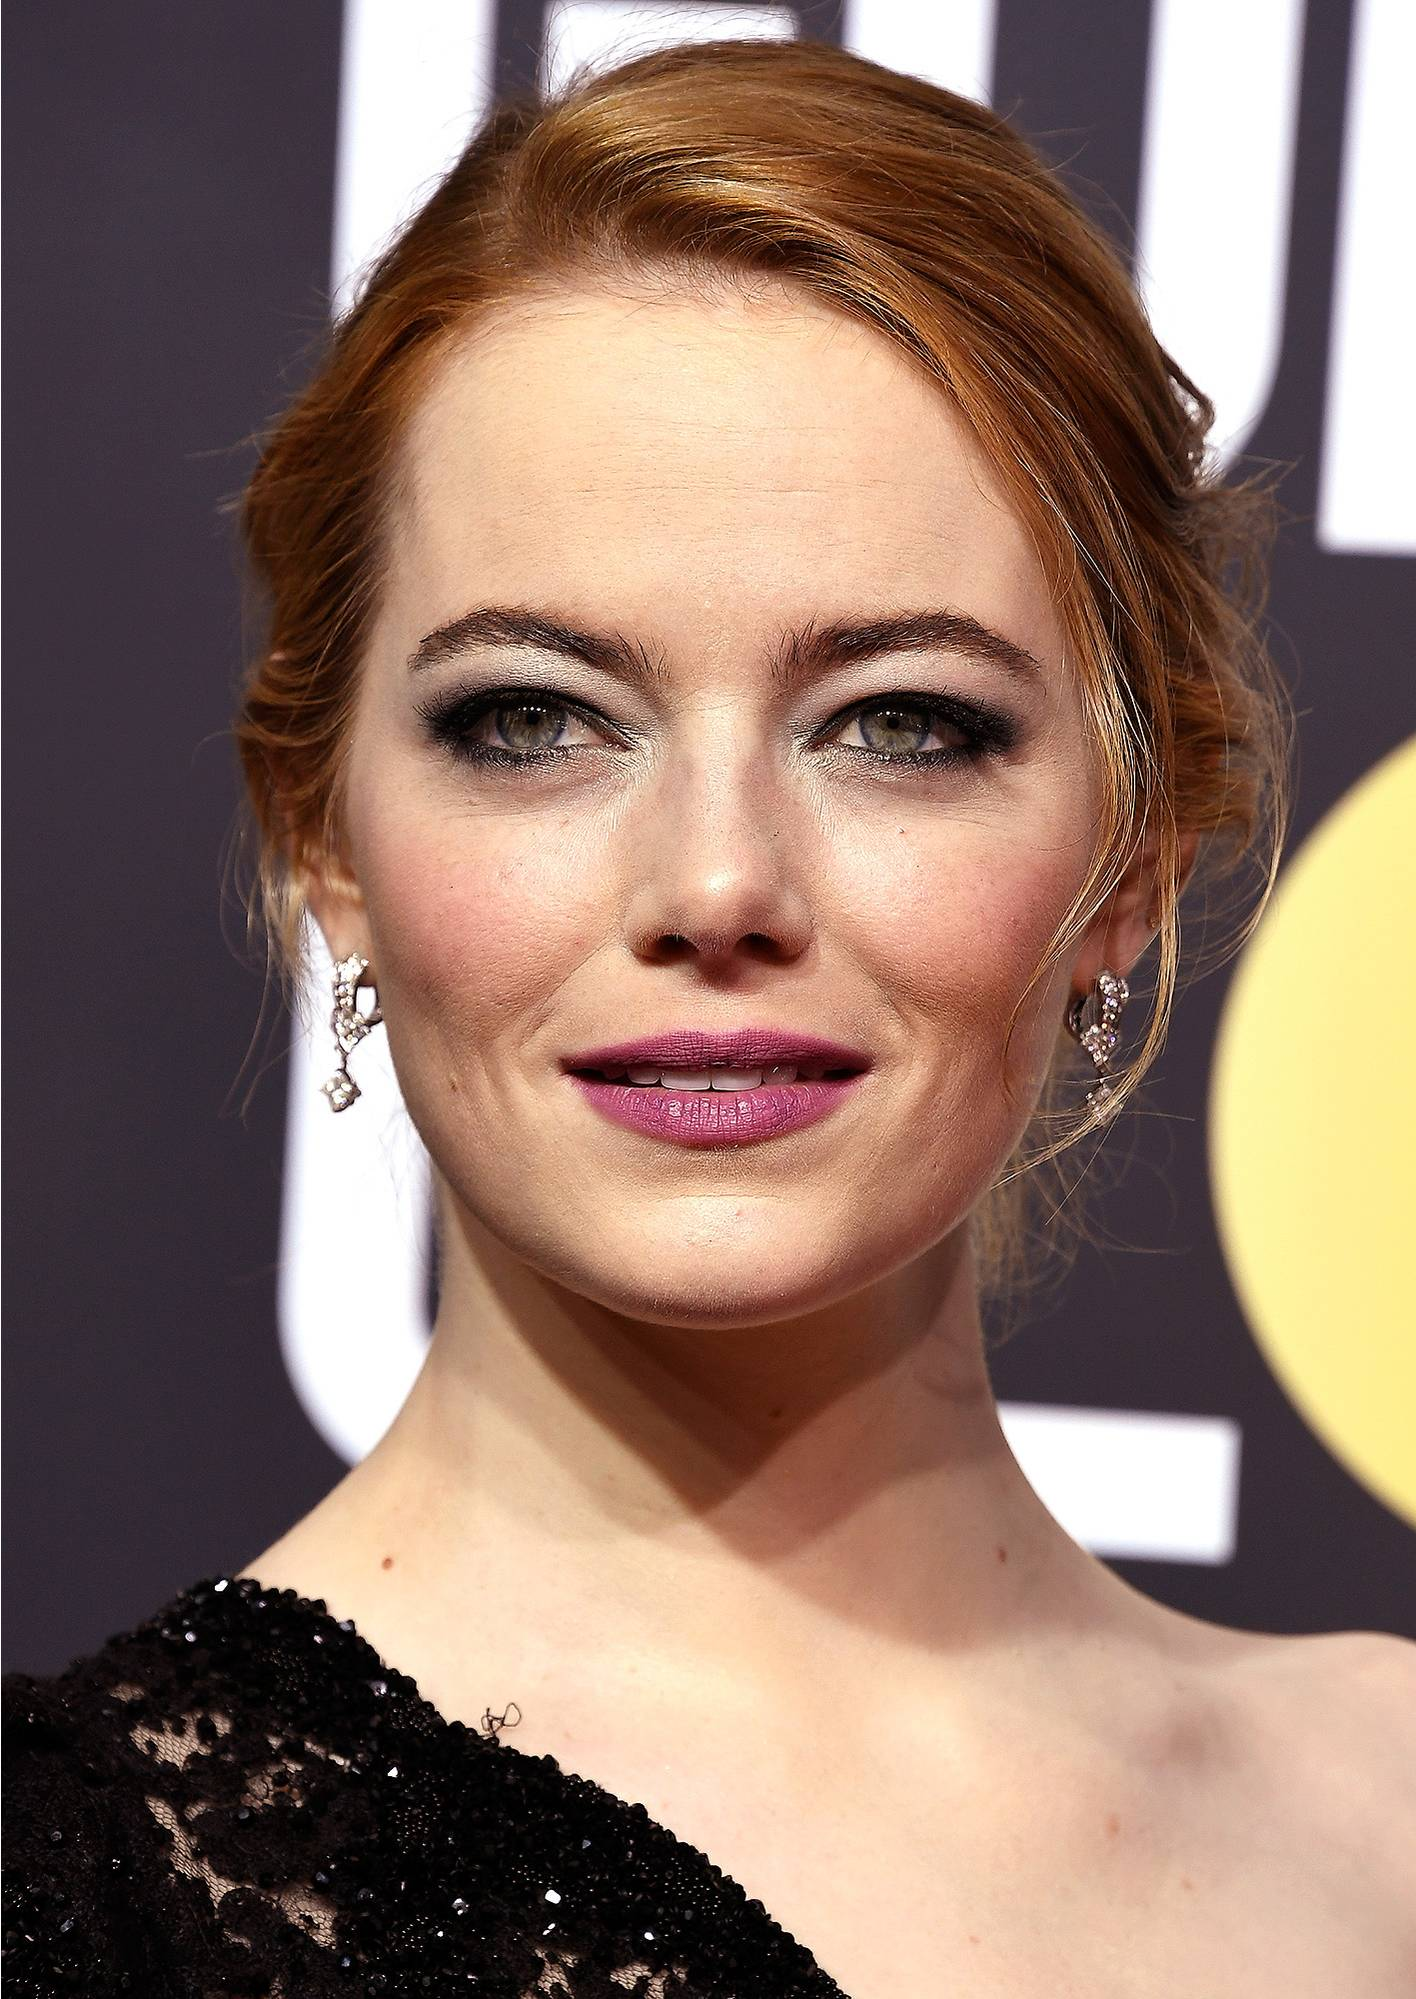 Emma Stone - I am HERE for a redhead in a purple lip! Emma's makeup artist Rachel Goodwin used a color palette inspired by the women's suffrage movement including purple, white, and green. Use this as inspiration to rock a face beat inspired by what you're passionate about! My next look will be